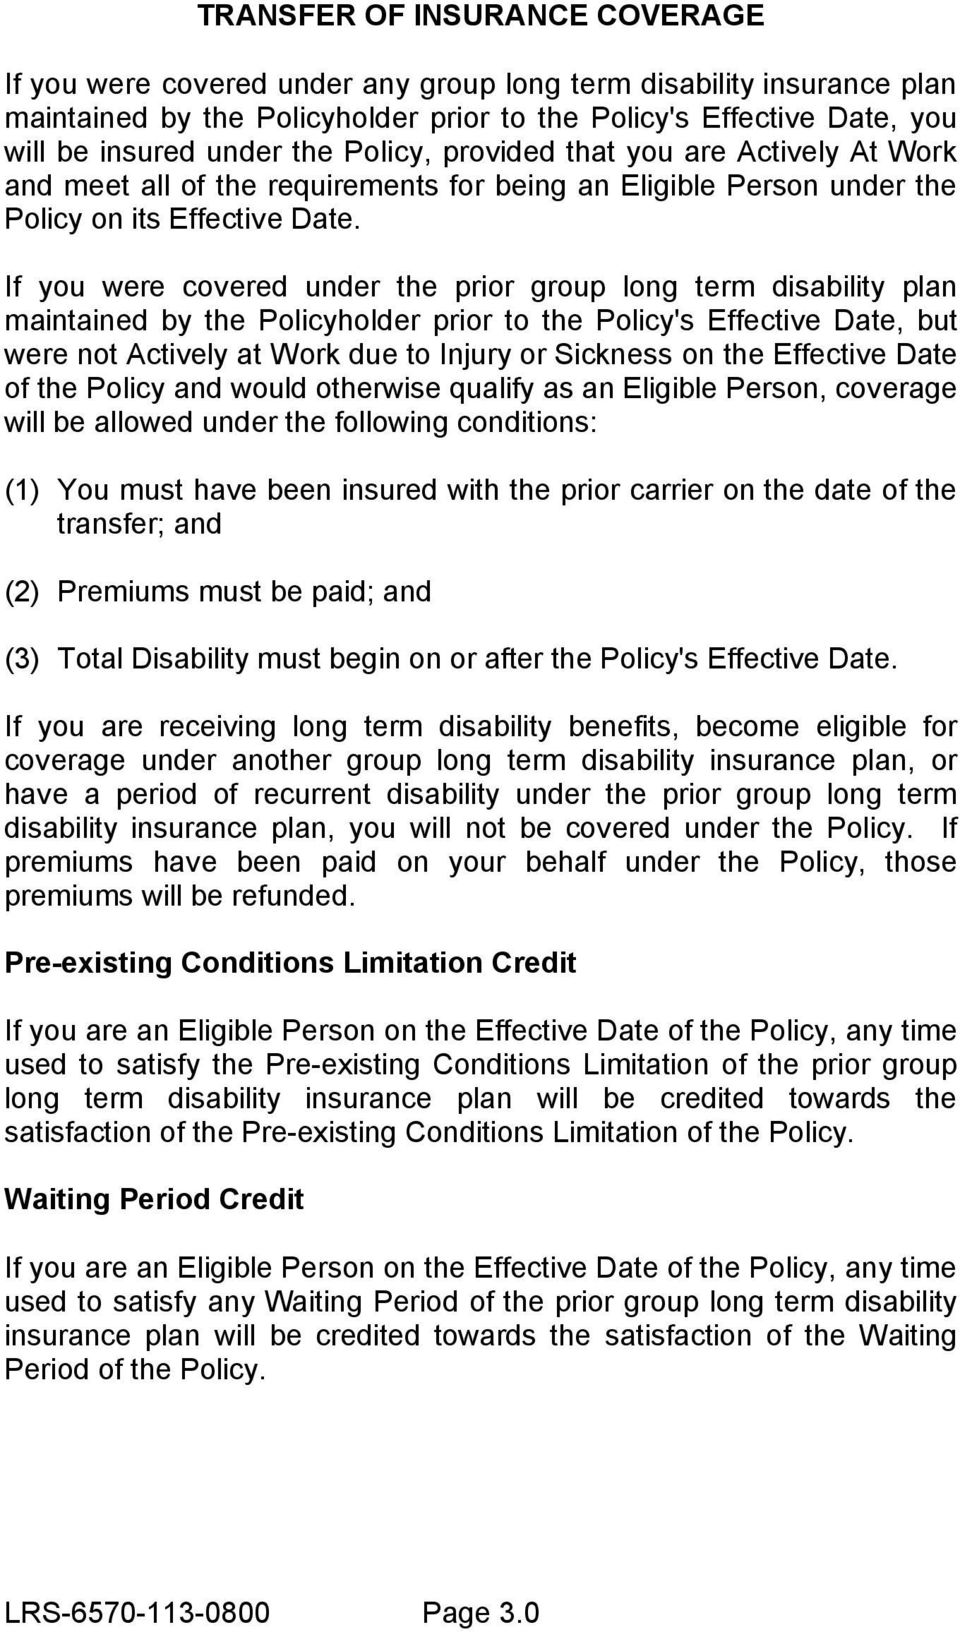 If you were covered under the prior group long term disability plan maintained by the Policyholder prior to the Policy's Effective Date, but were not Actively at Work due to Injury or Sickness on the